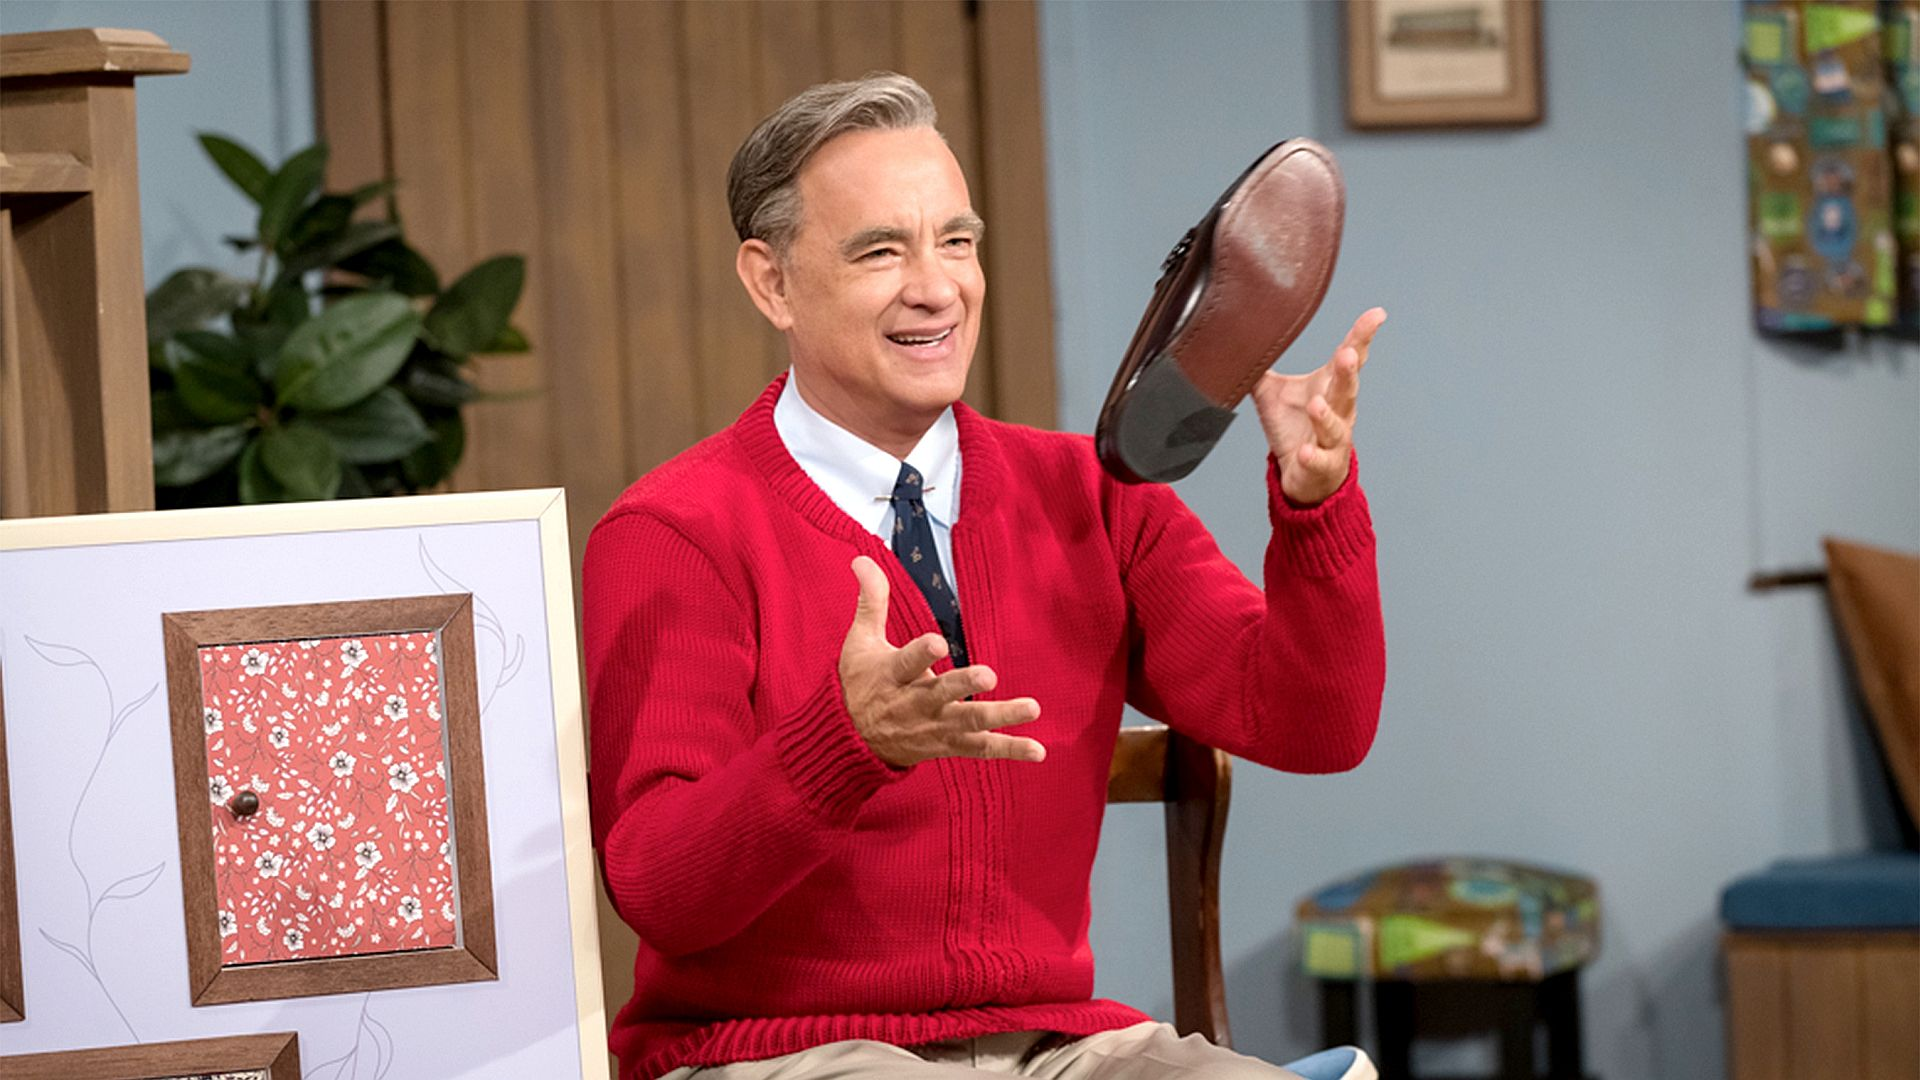 Tom Hanks Really Does Look Like Mr Rogers The New Movie Trailer Is Proof The Boston Globe